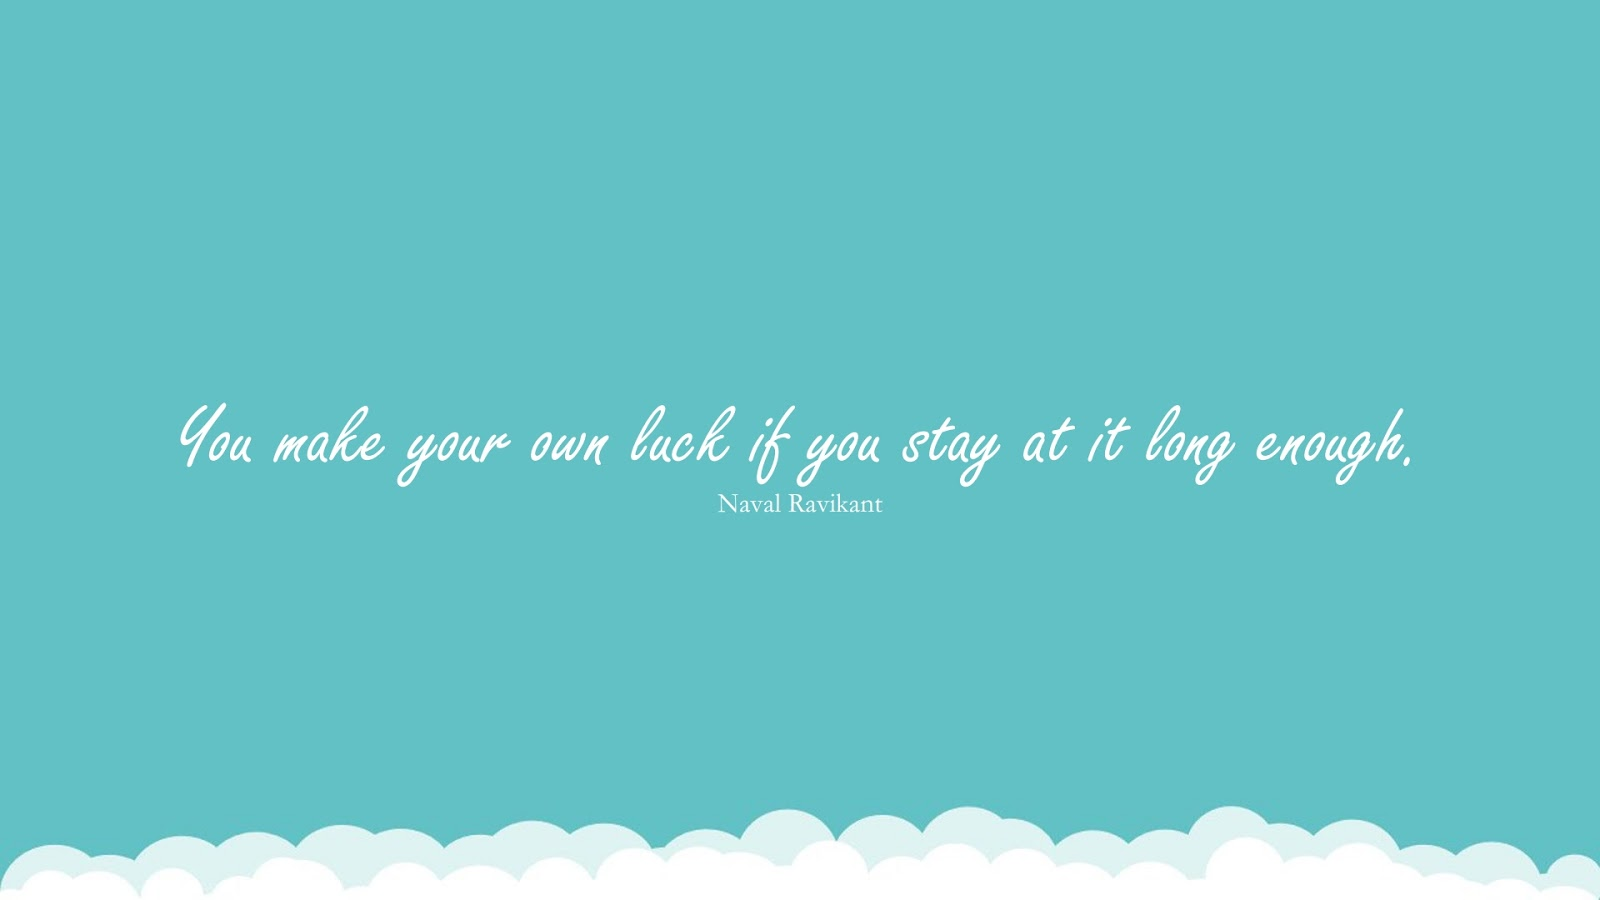 You make your own luck if you stay at it long enough. (Naval Ravikant);  #InspirationalQuotes